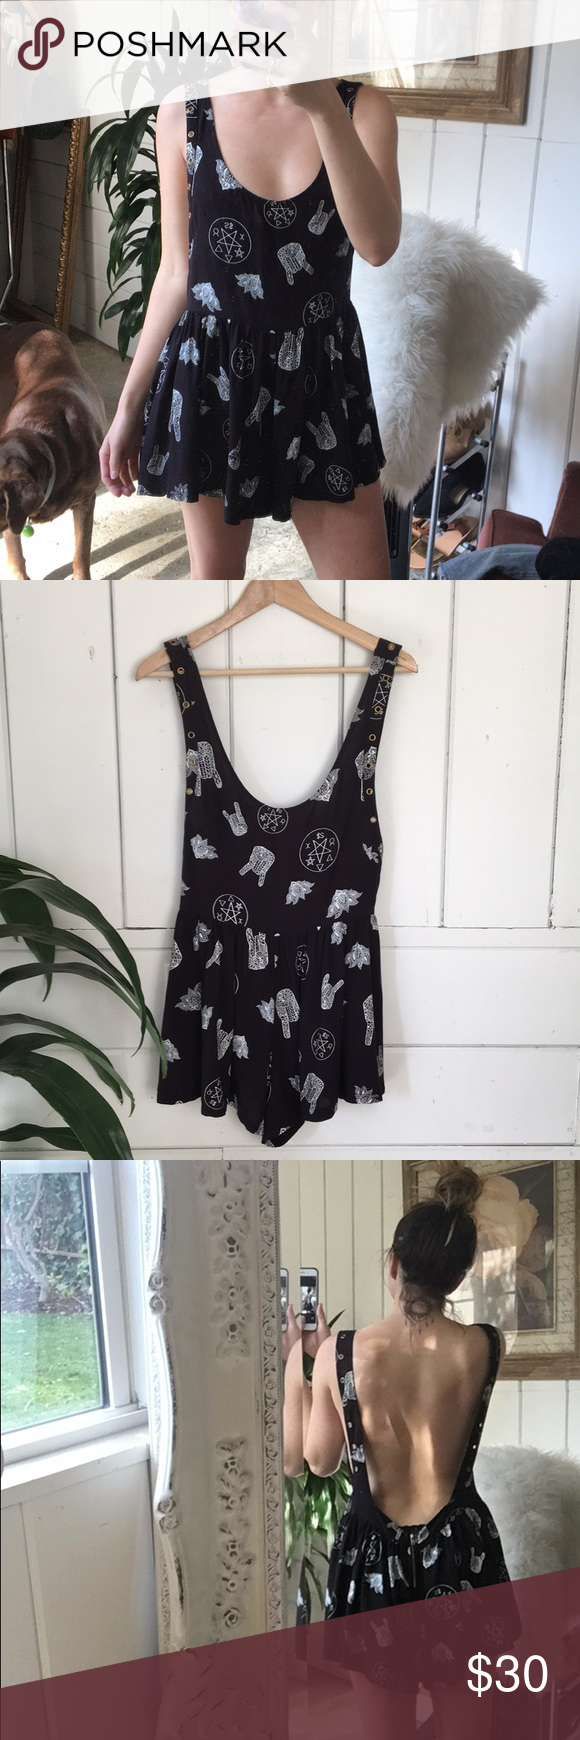 """f70912801e04 SIN Retro Boho Romper Gently used in great condition. 29"""" length 16"""" waist"""